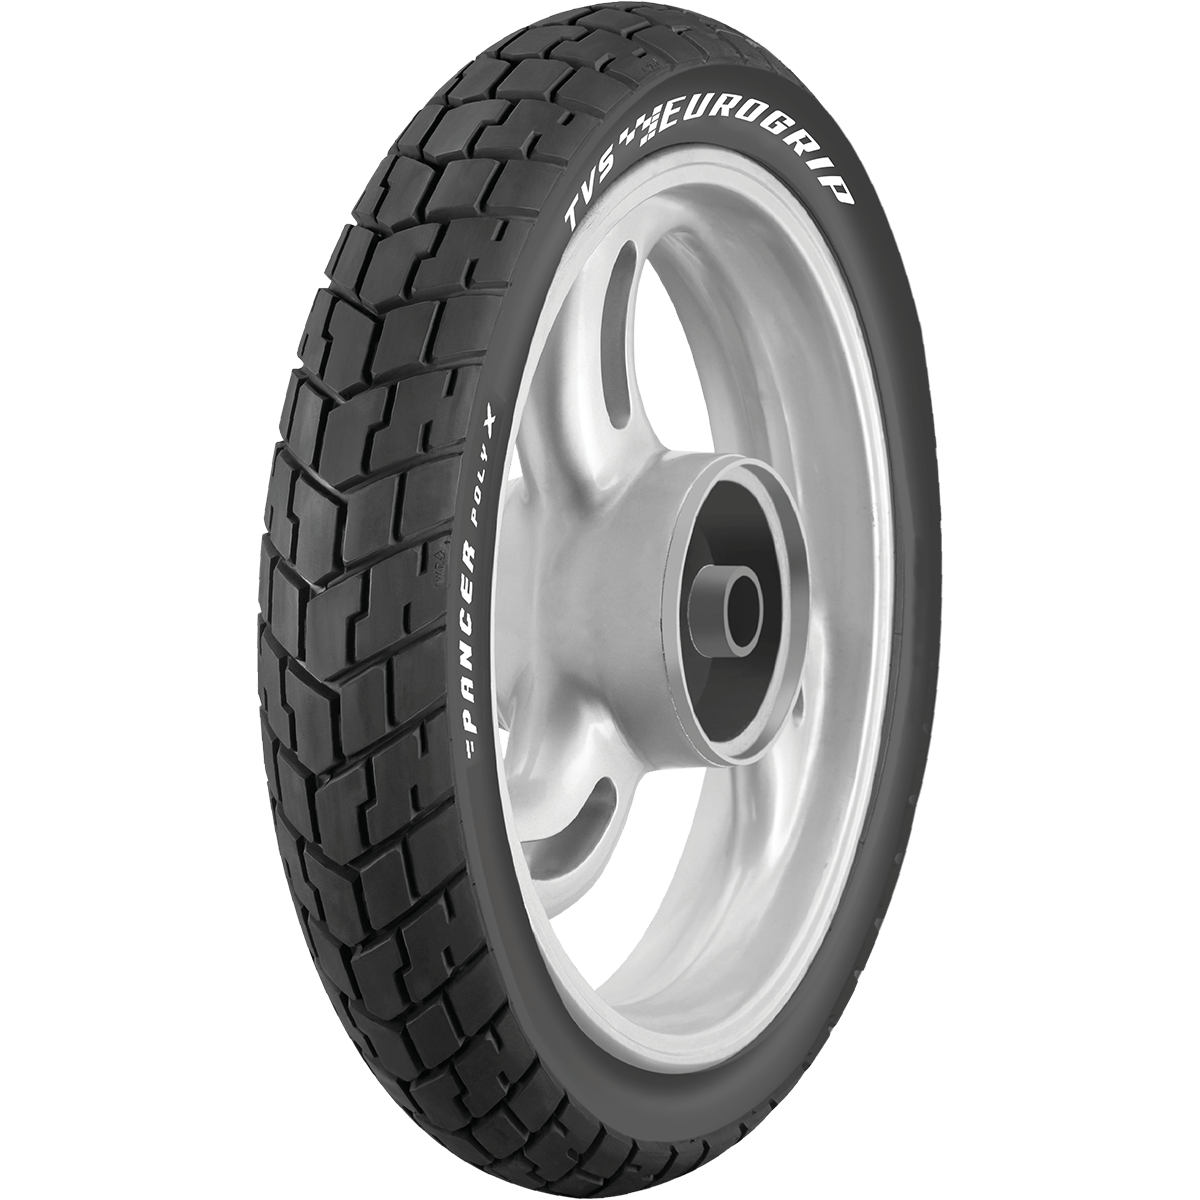 TVS PANCER POLYX 120/80 17 Tubeless 61 P Rear Two-Wheeler Tyre